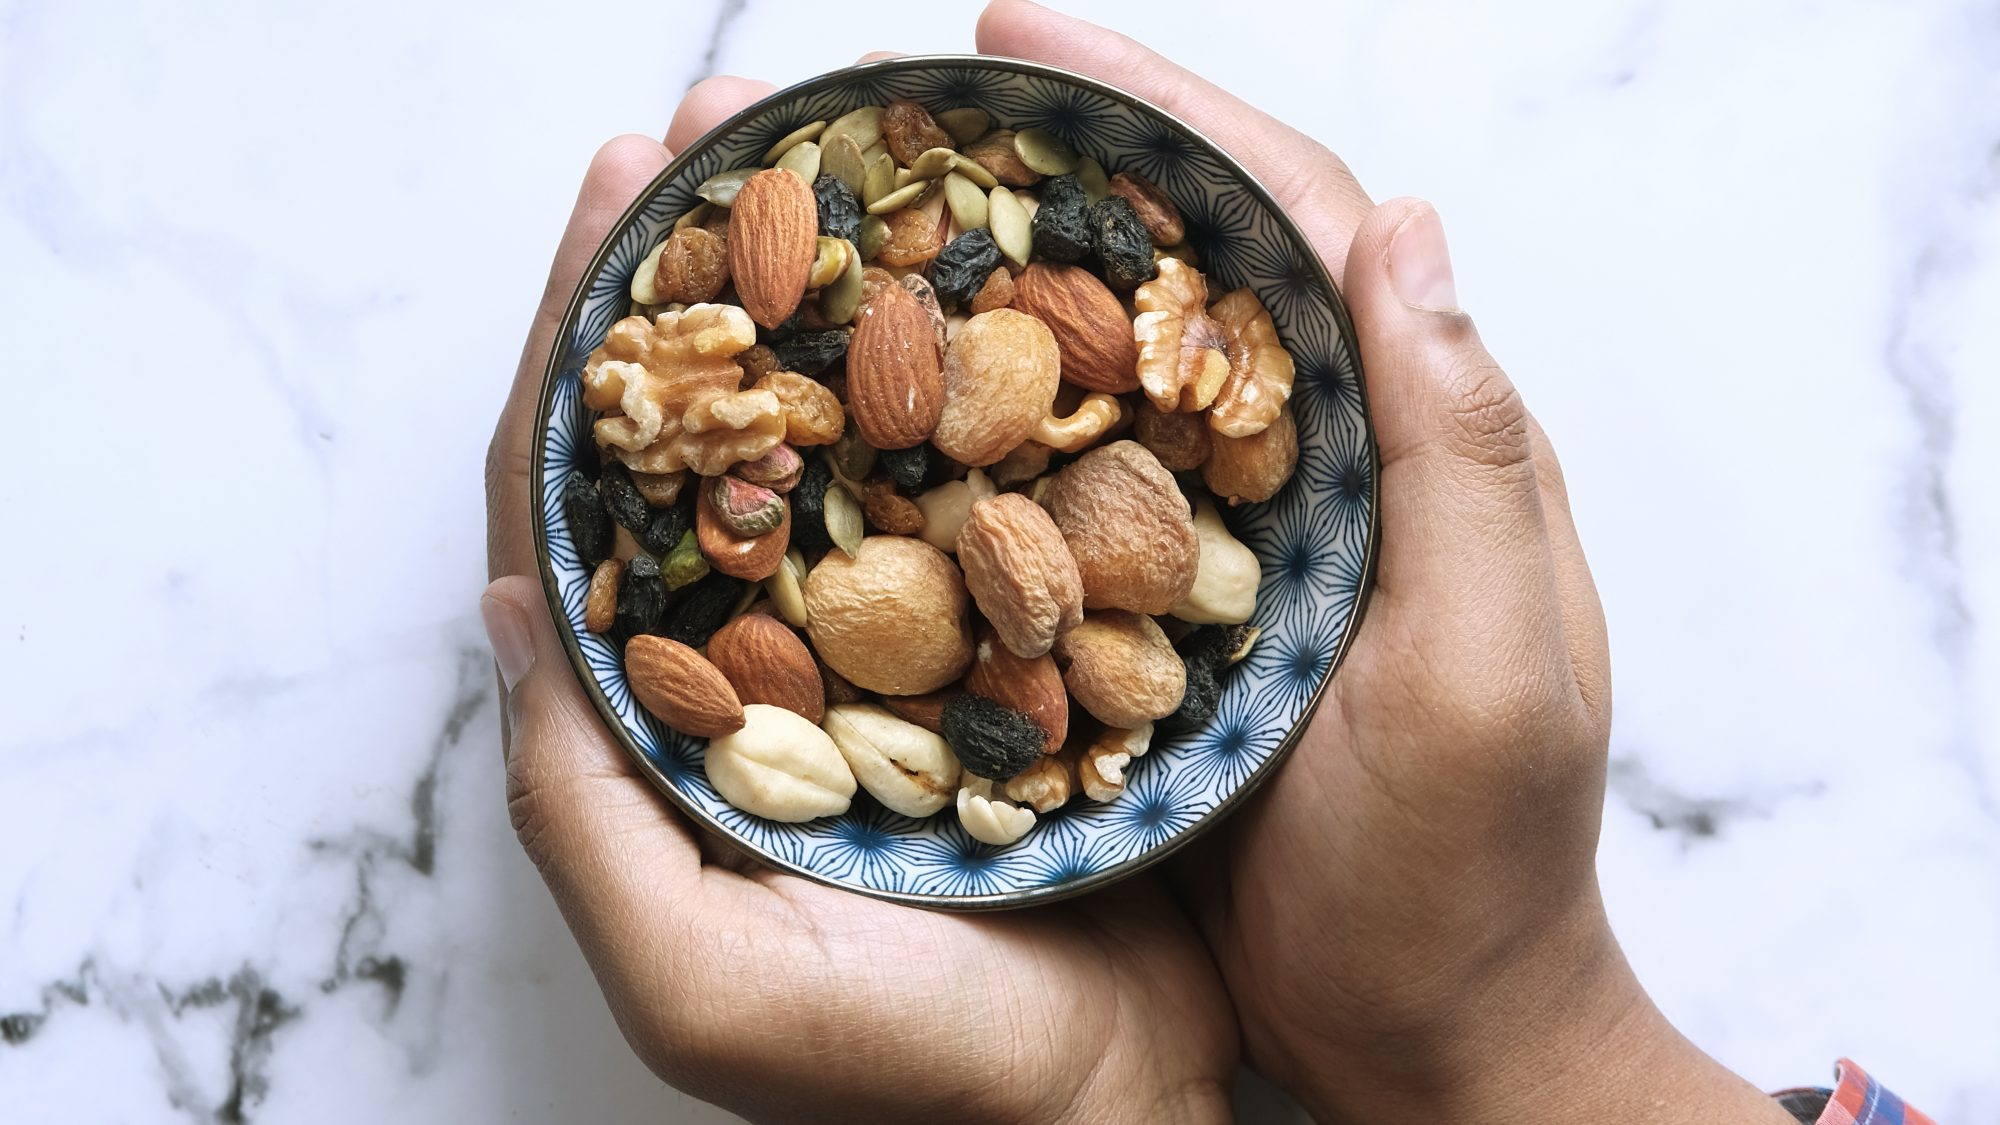 healthy-snacking: nuts and dried fruit